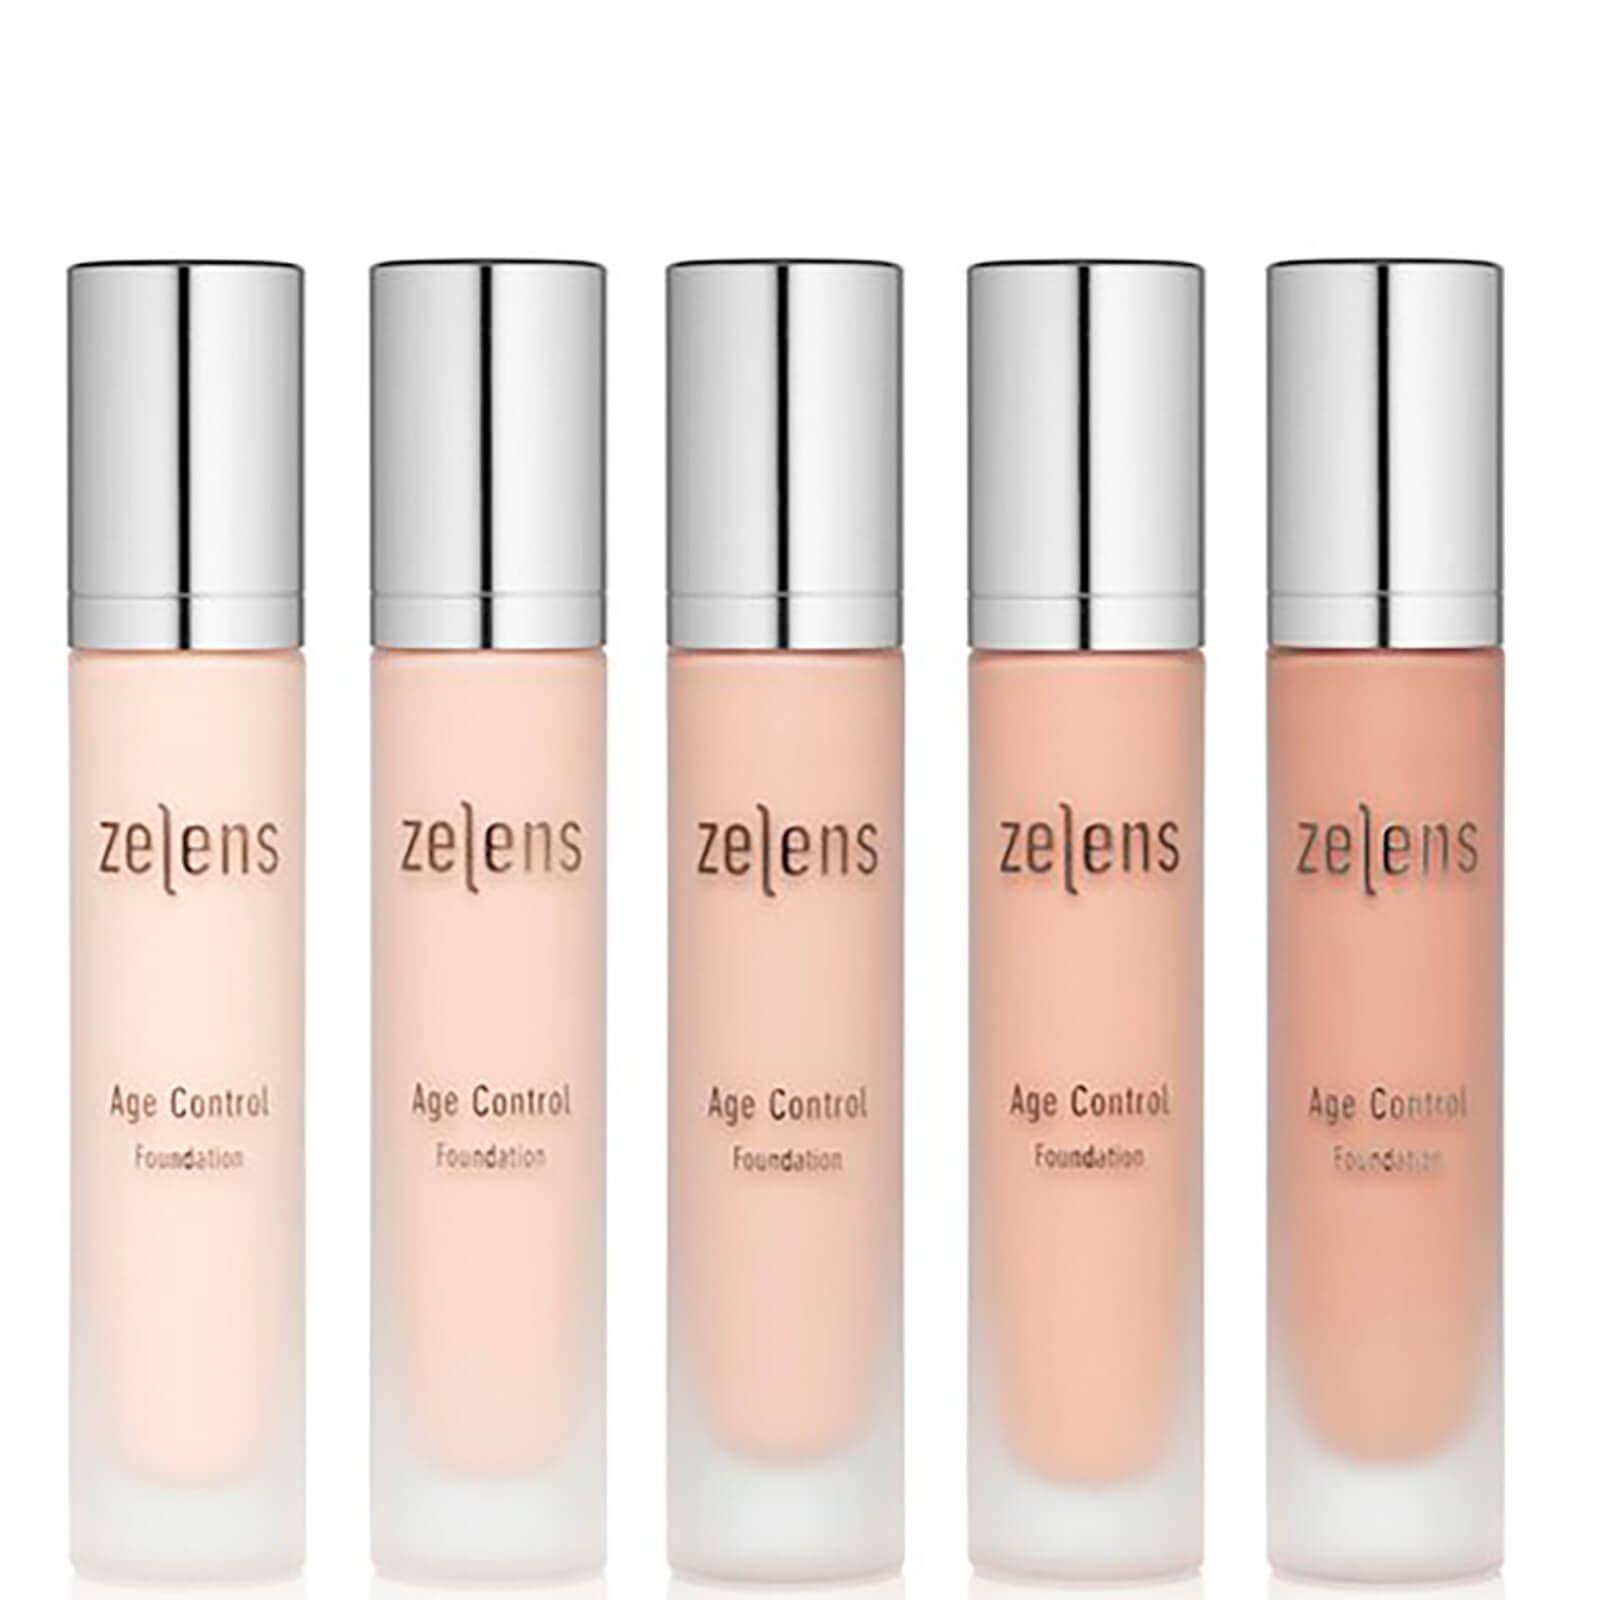 Zelens Age Control Foundation 30ml Beautyexpert